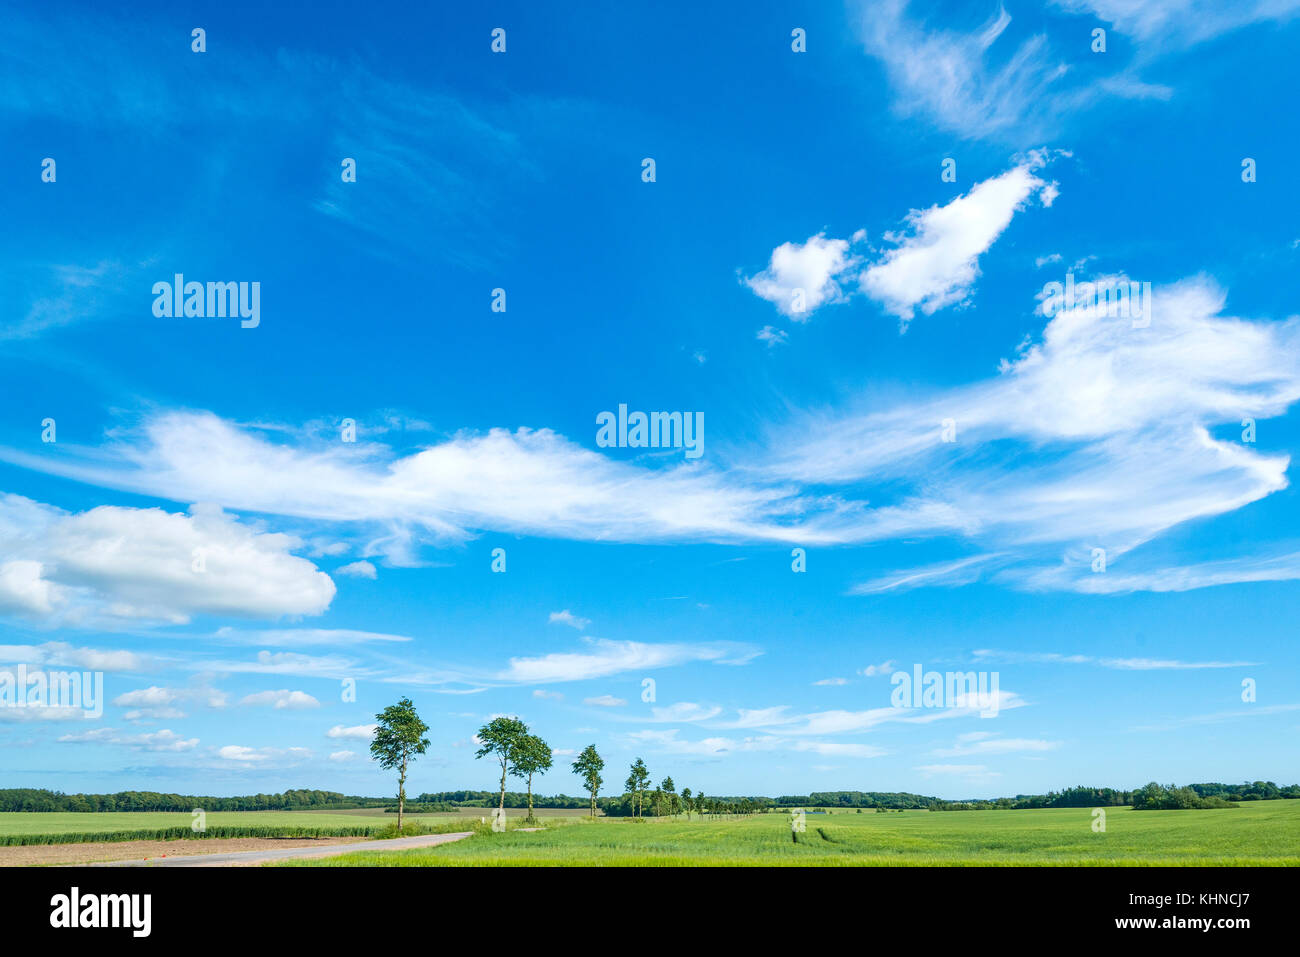 Landscape in the summer with white clouds in the blue sky over green fields - Stock Image